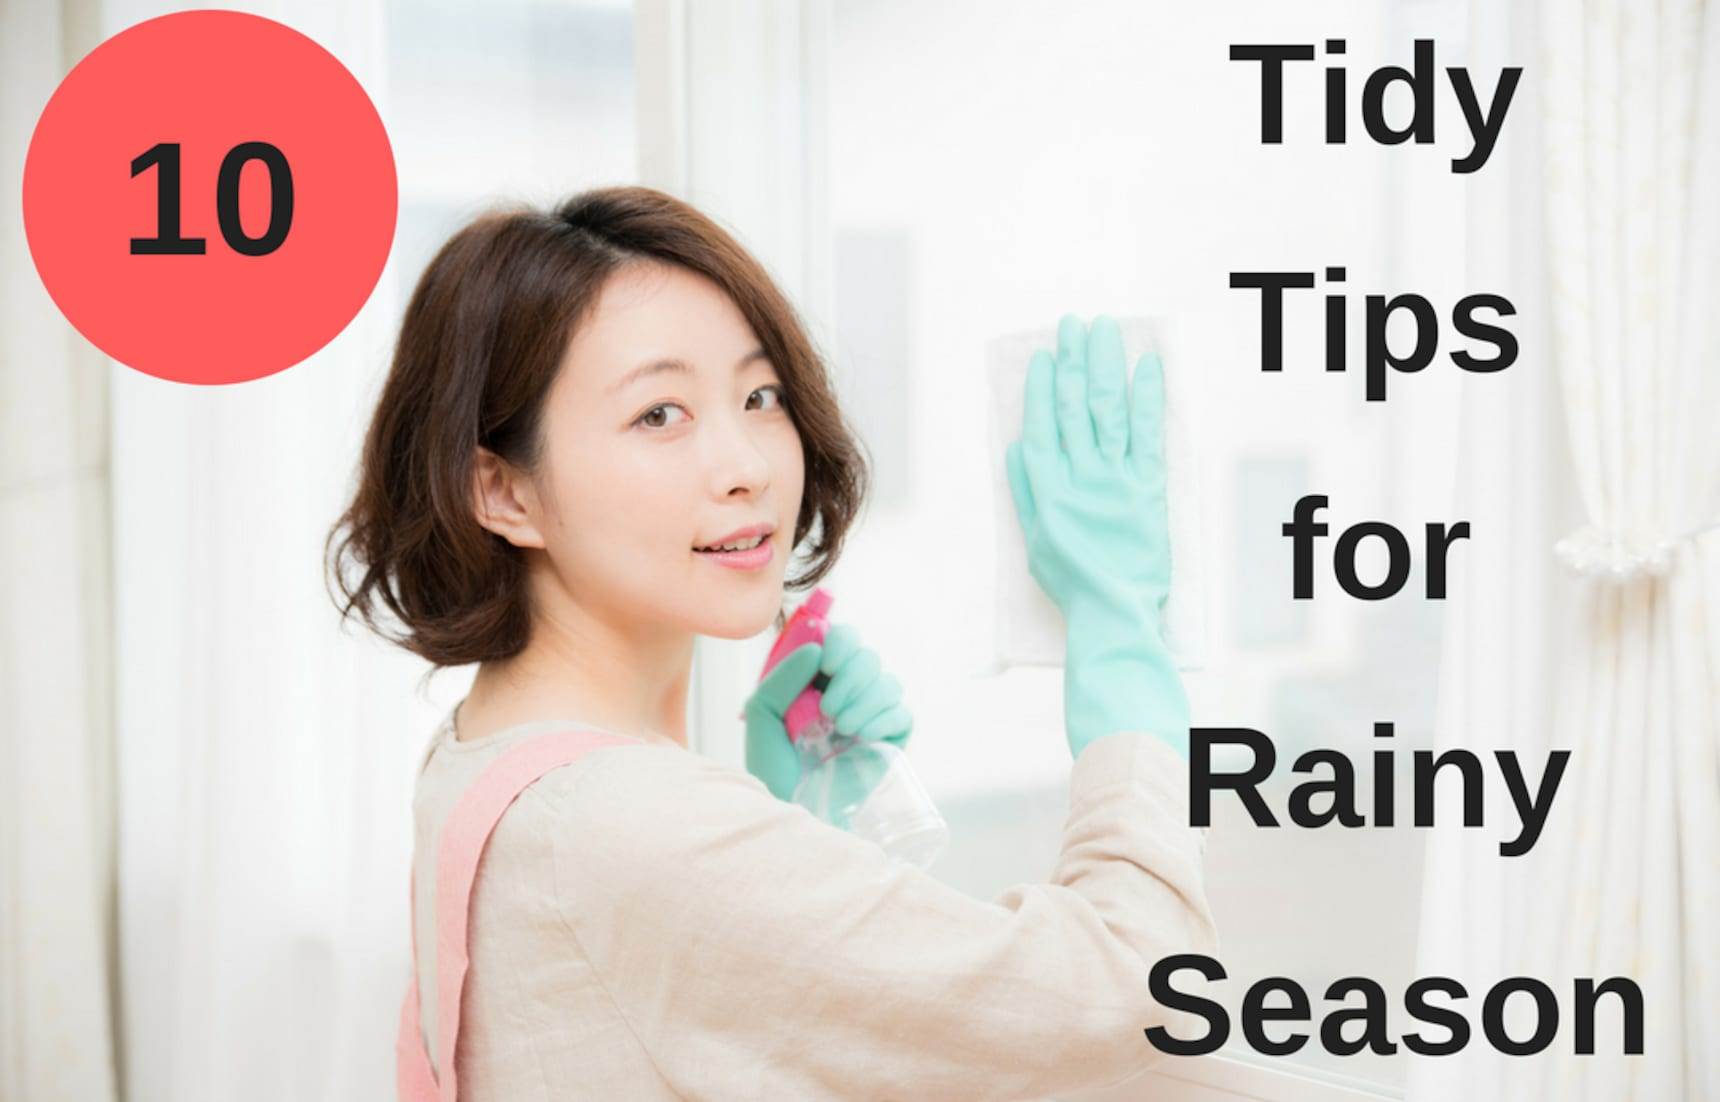 10 Tidy Tips for Rainy Season